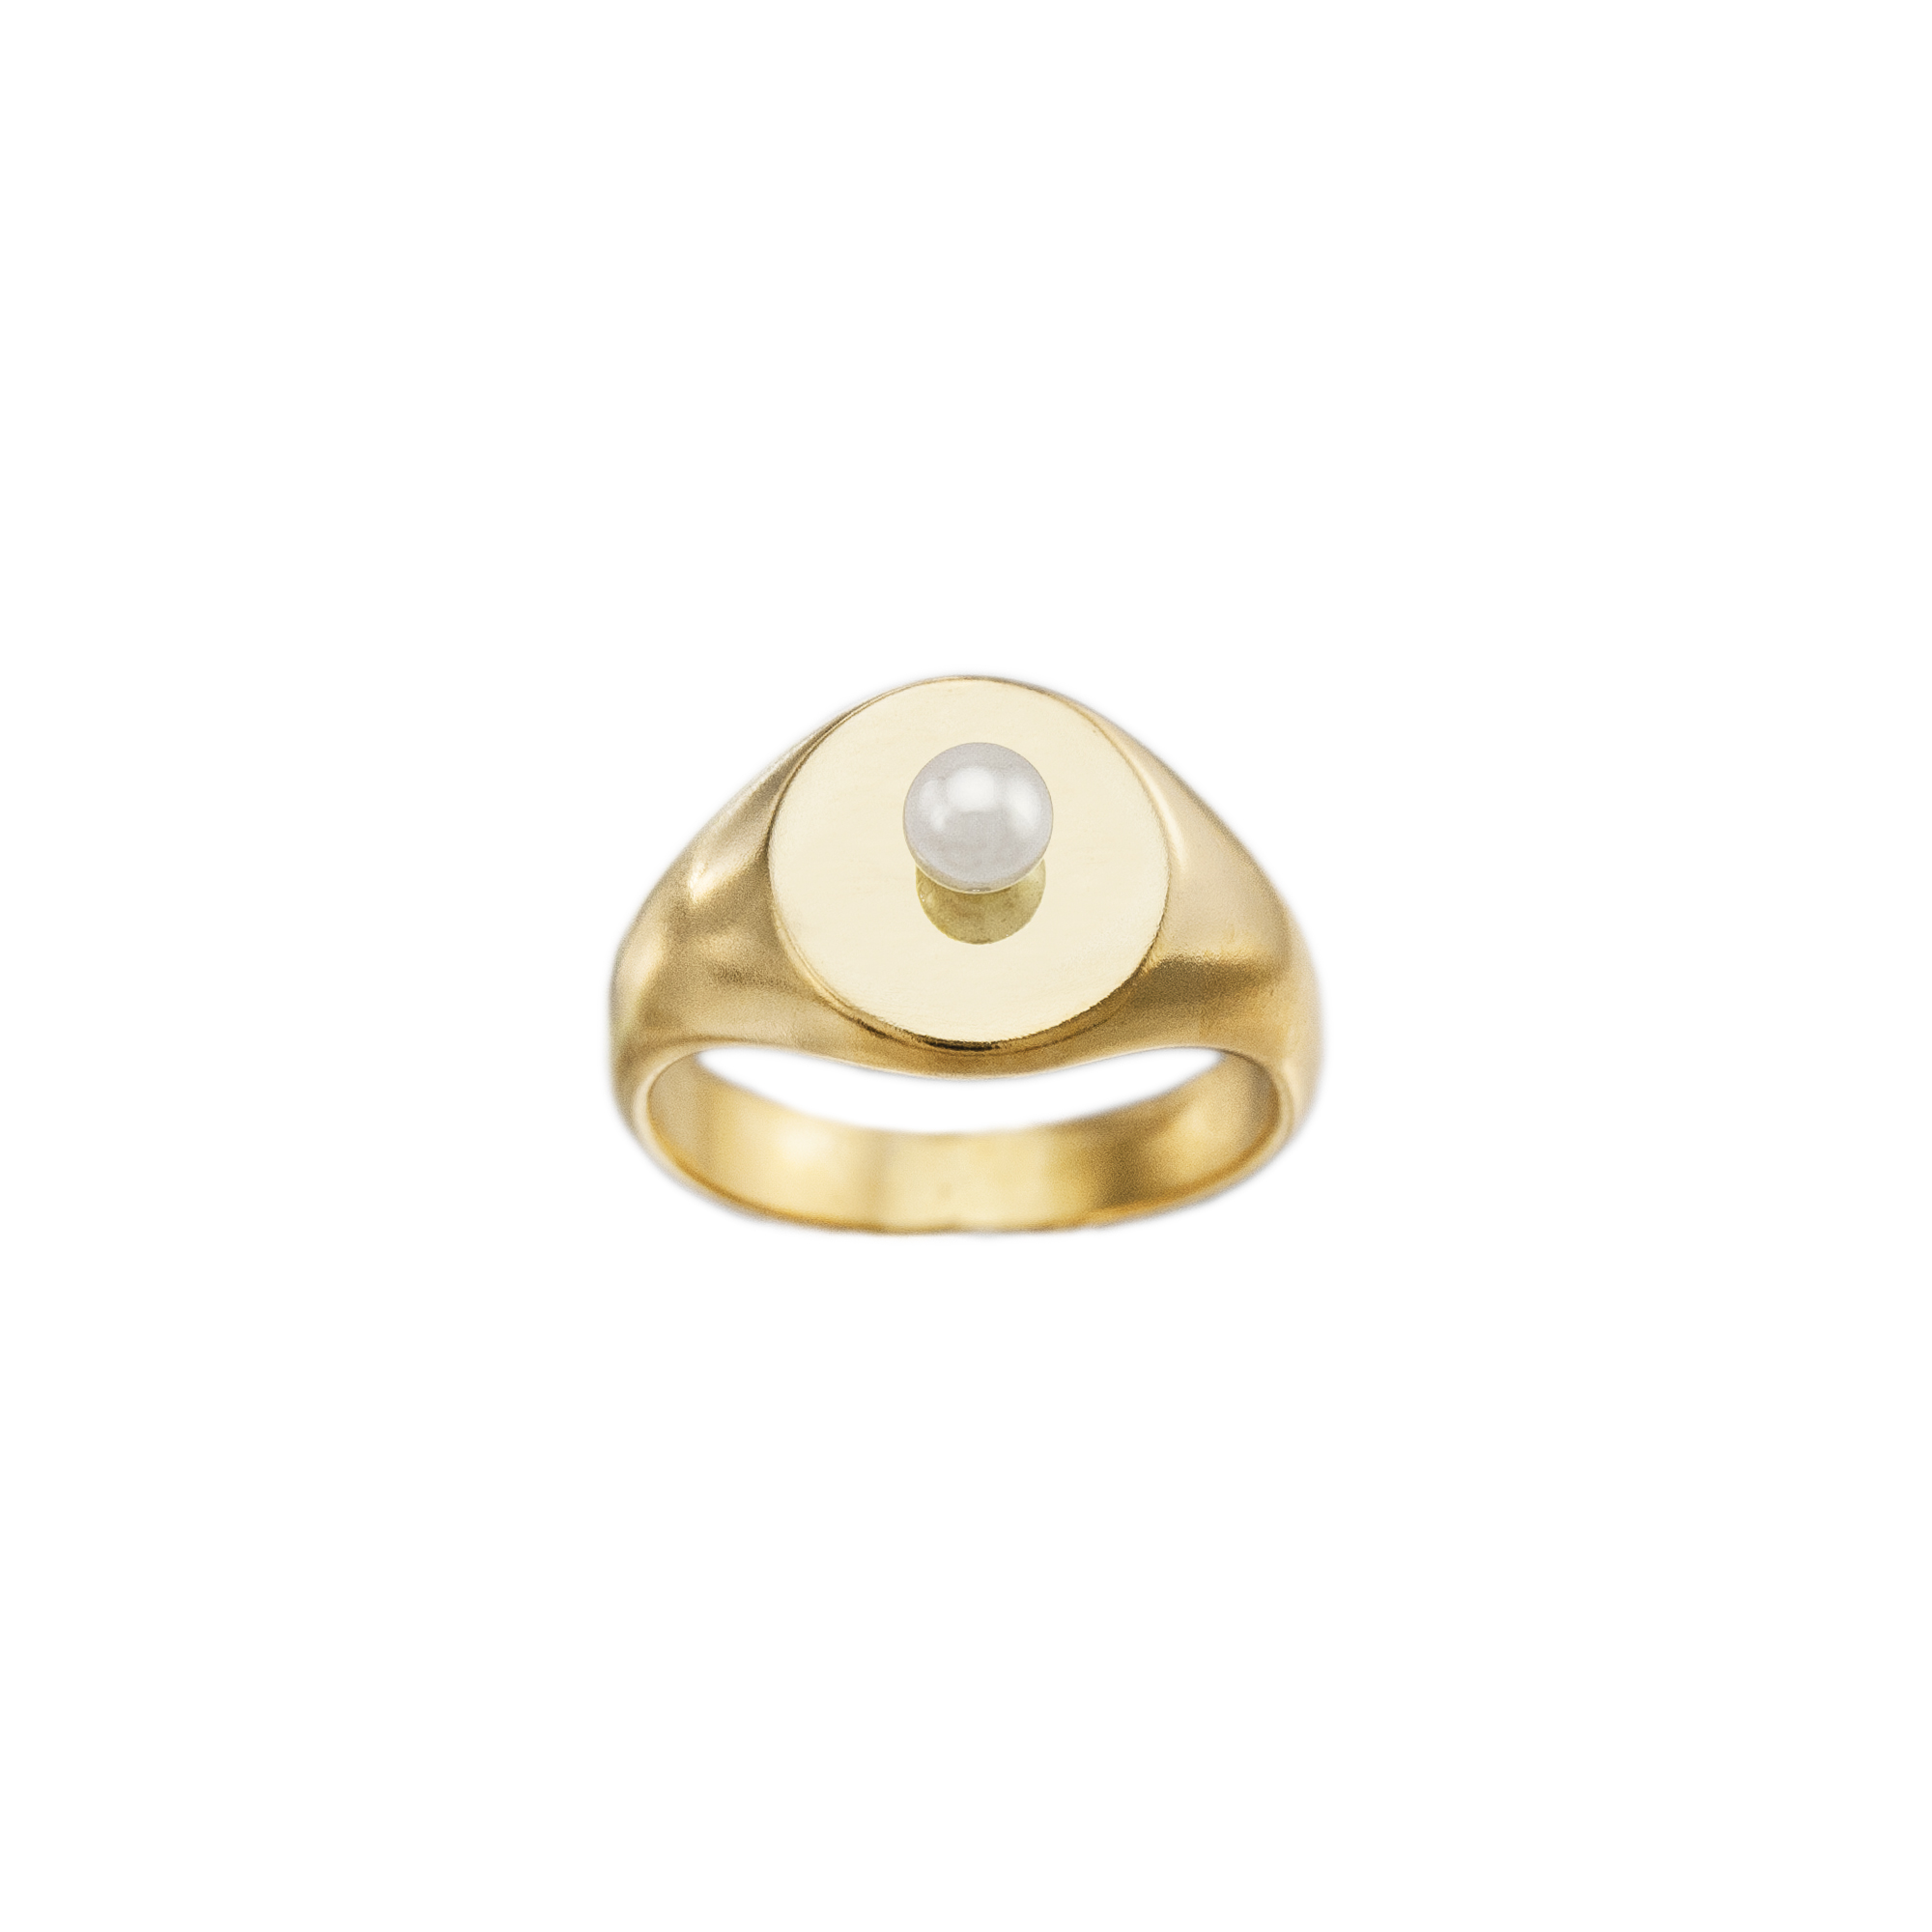 Gold Signet Ring Spice With Pearl